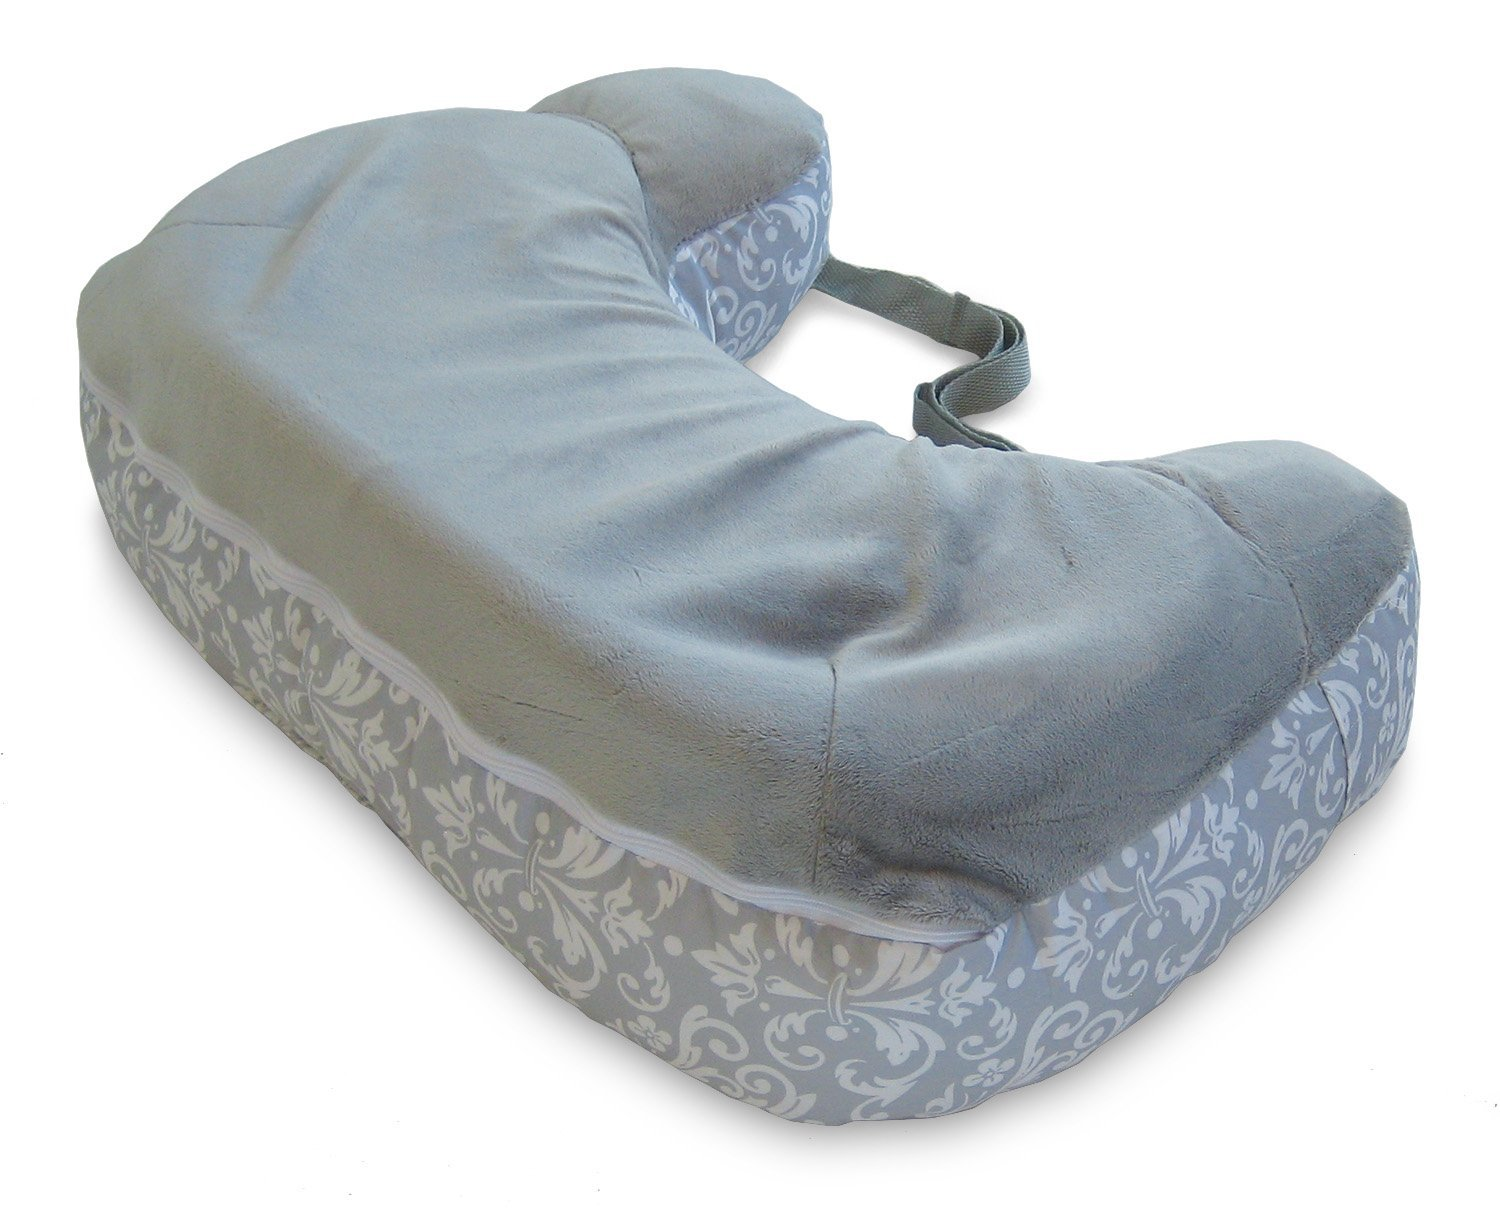 Boppy Two-Sided Breastfeeding Pillow, Kensington Gray by Boppy